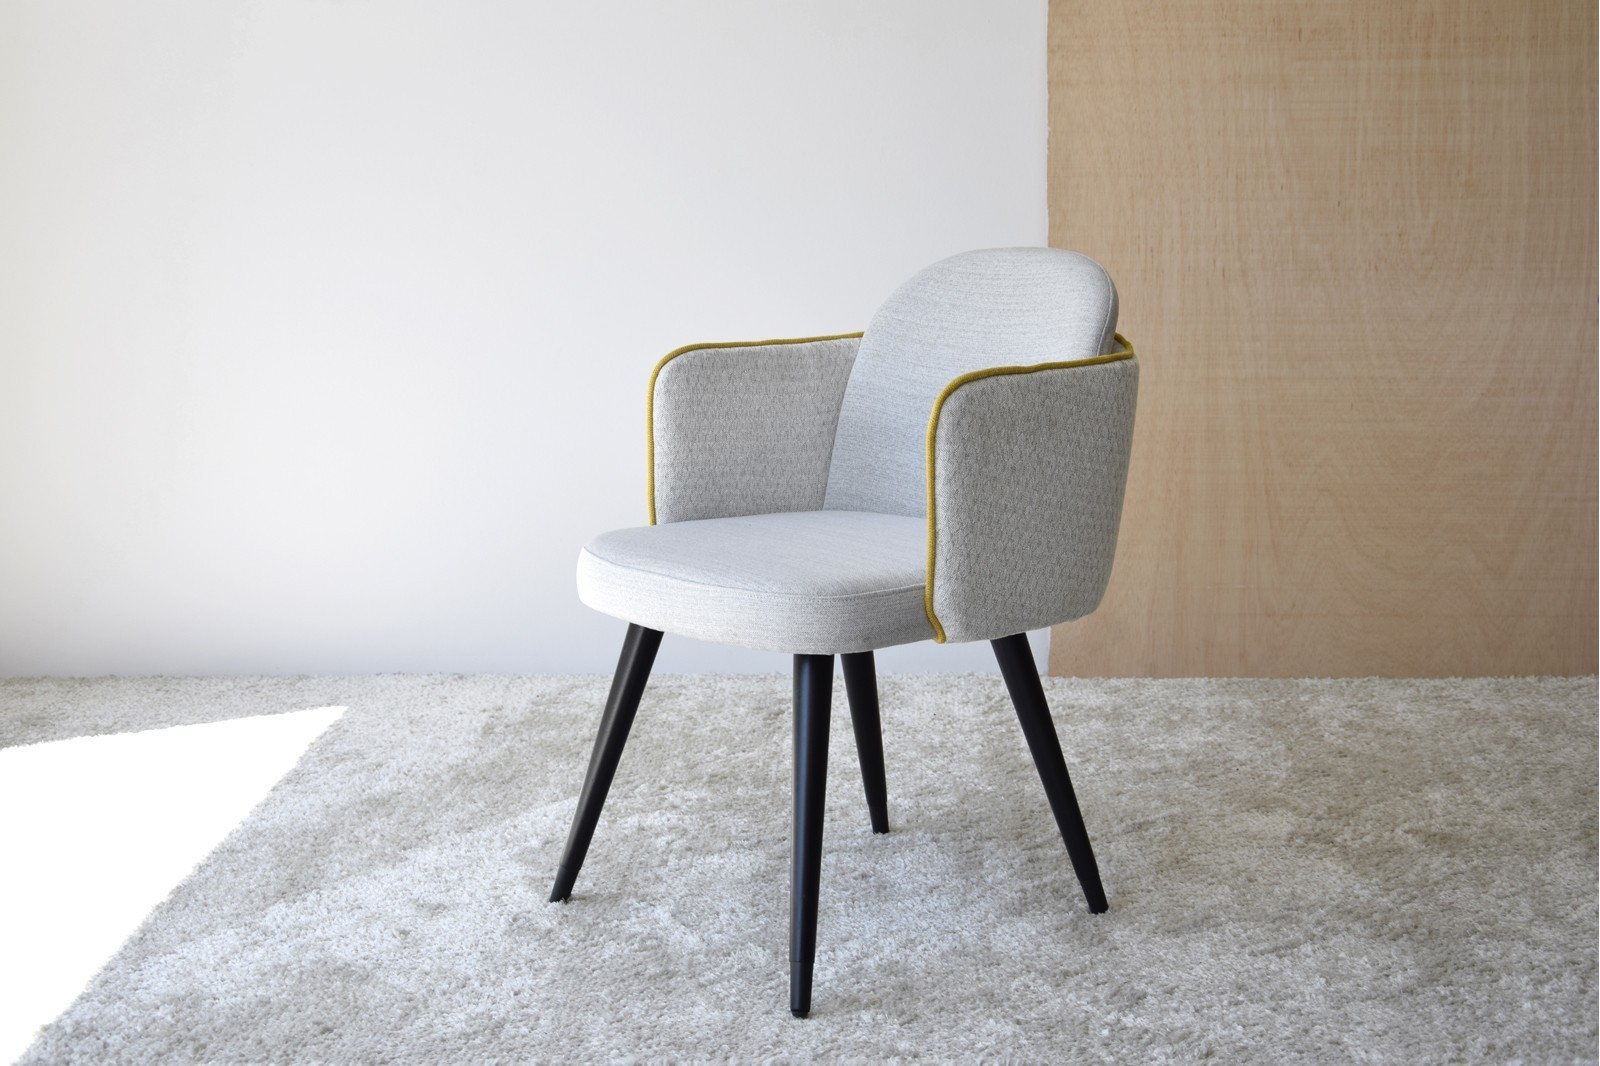 SET 2 DINING CHAIRS WITH ARMRESTS. LIGHT GREY